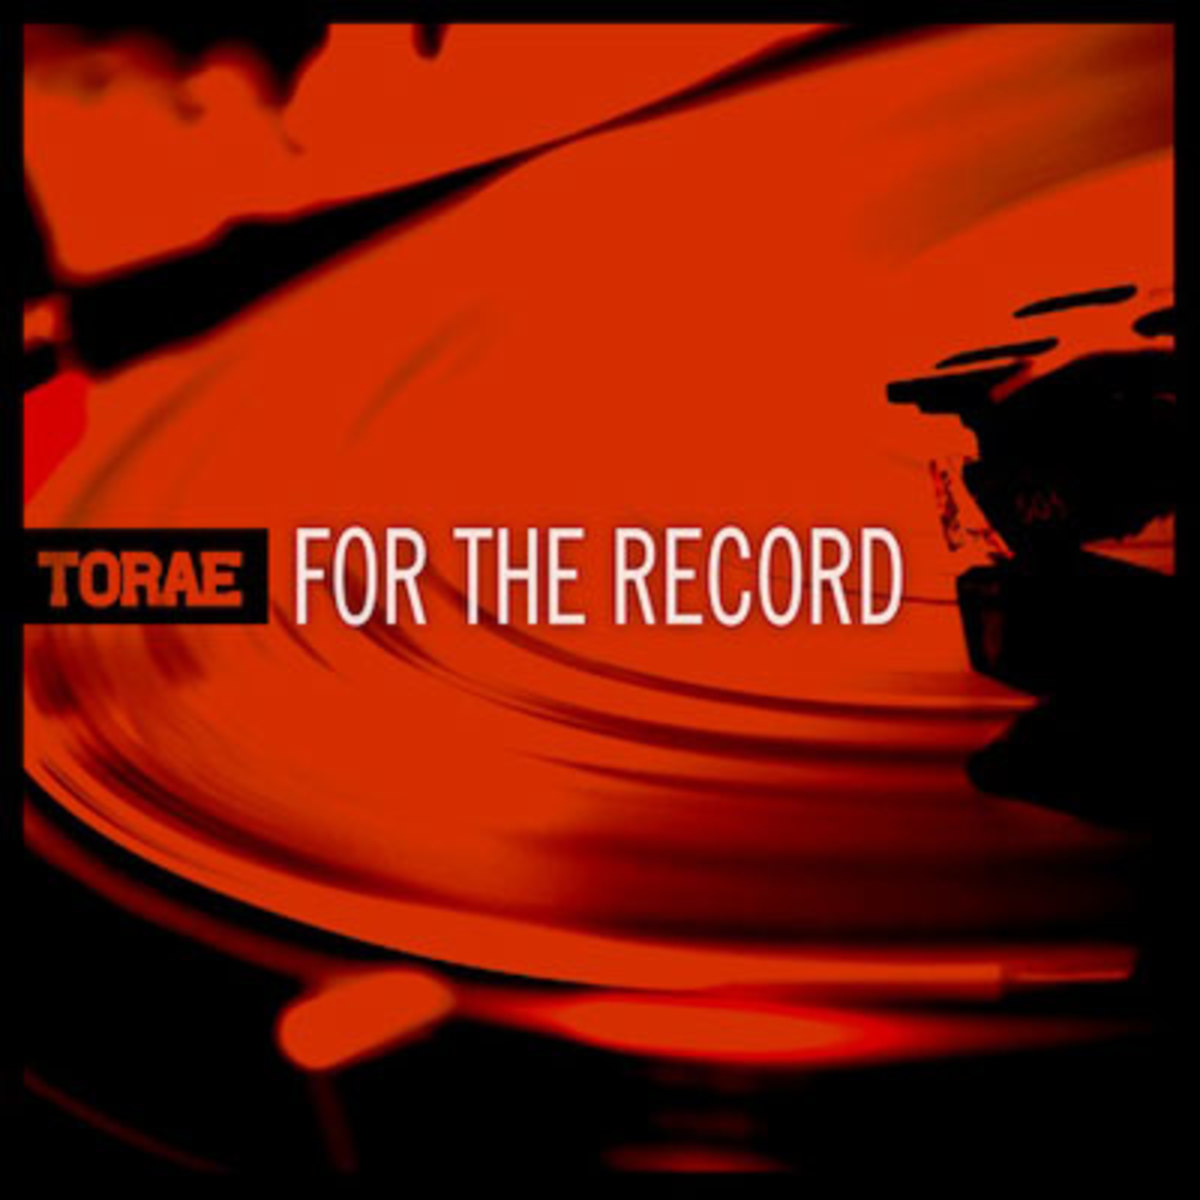 torae-fortherecord.jpg